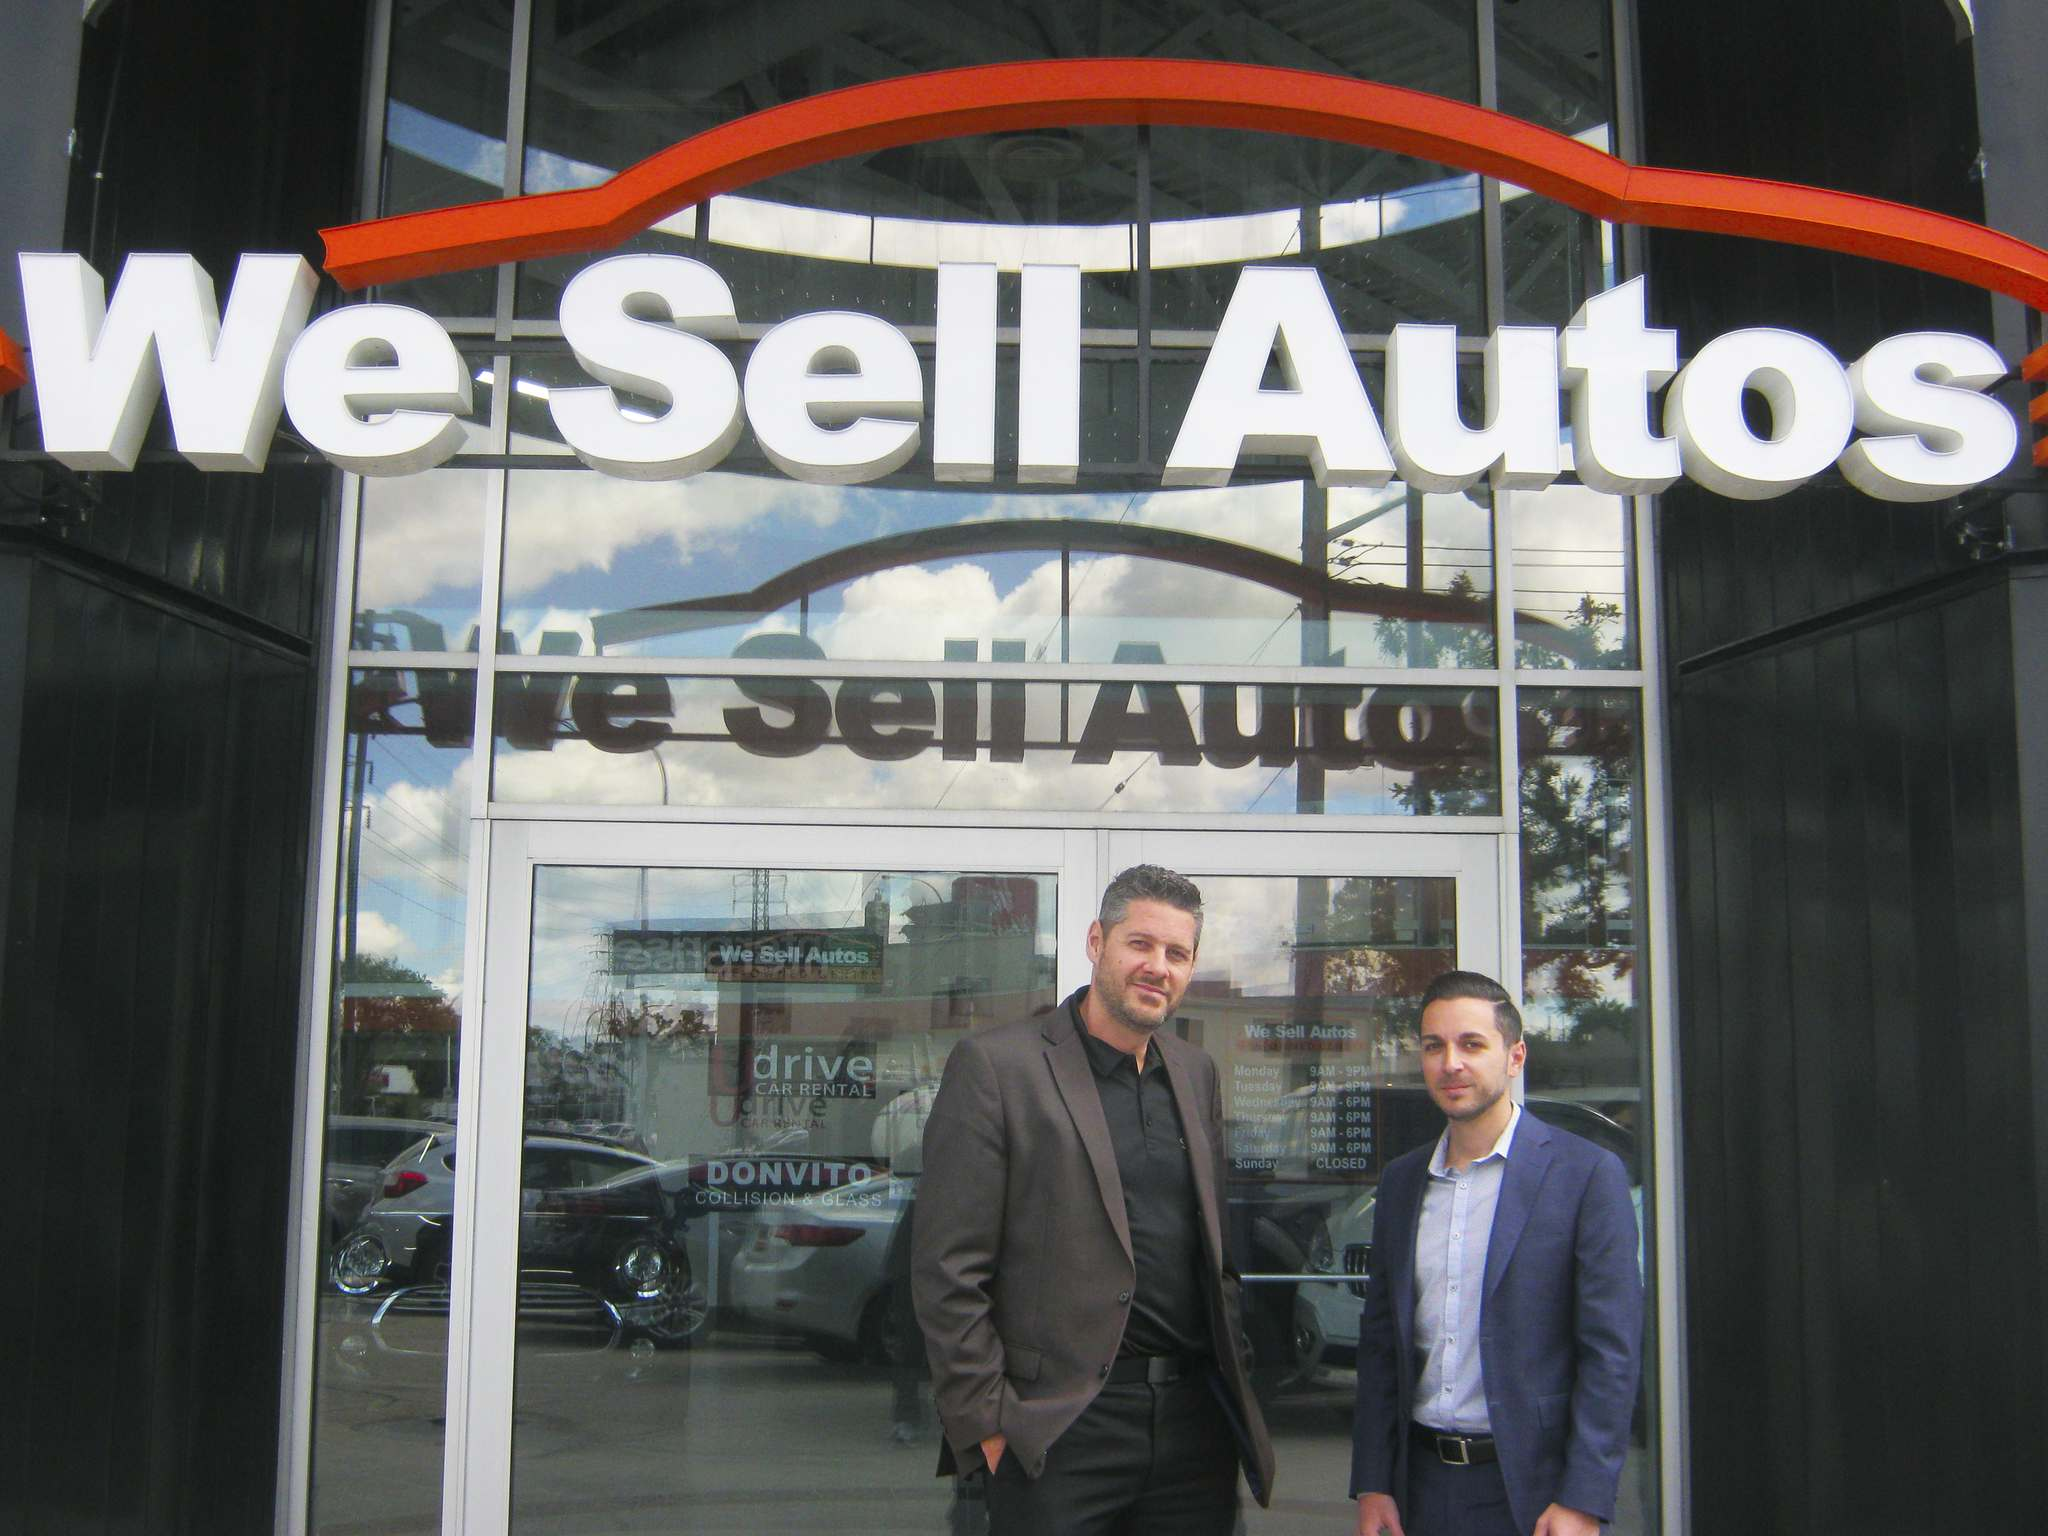 Myron Love / Winnipeg Free PressChris Dyck (left) and Paul Donvito outside their new We Sell Cars store.